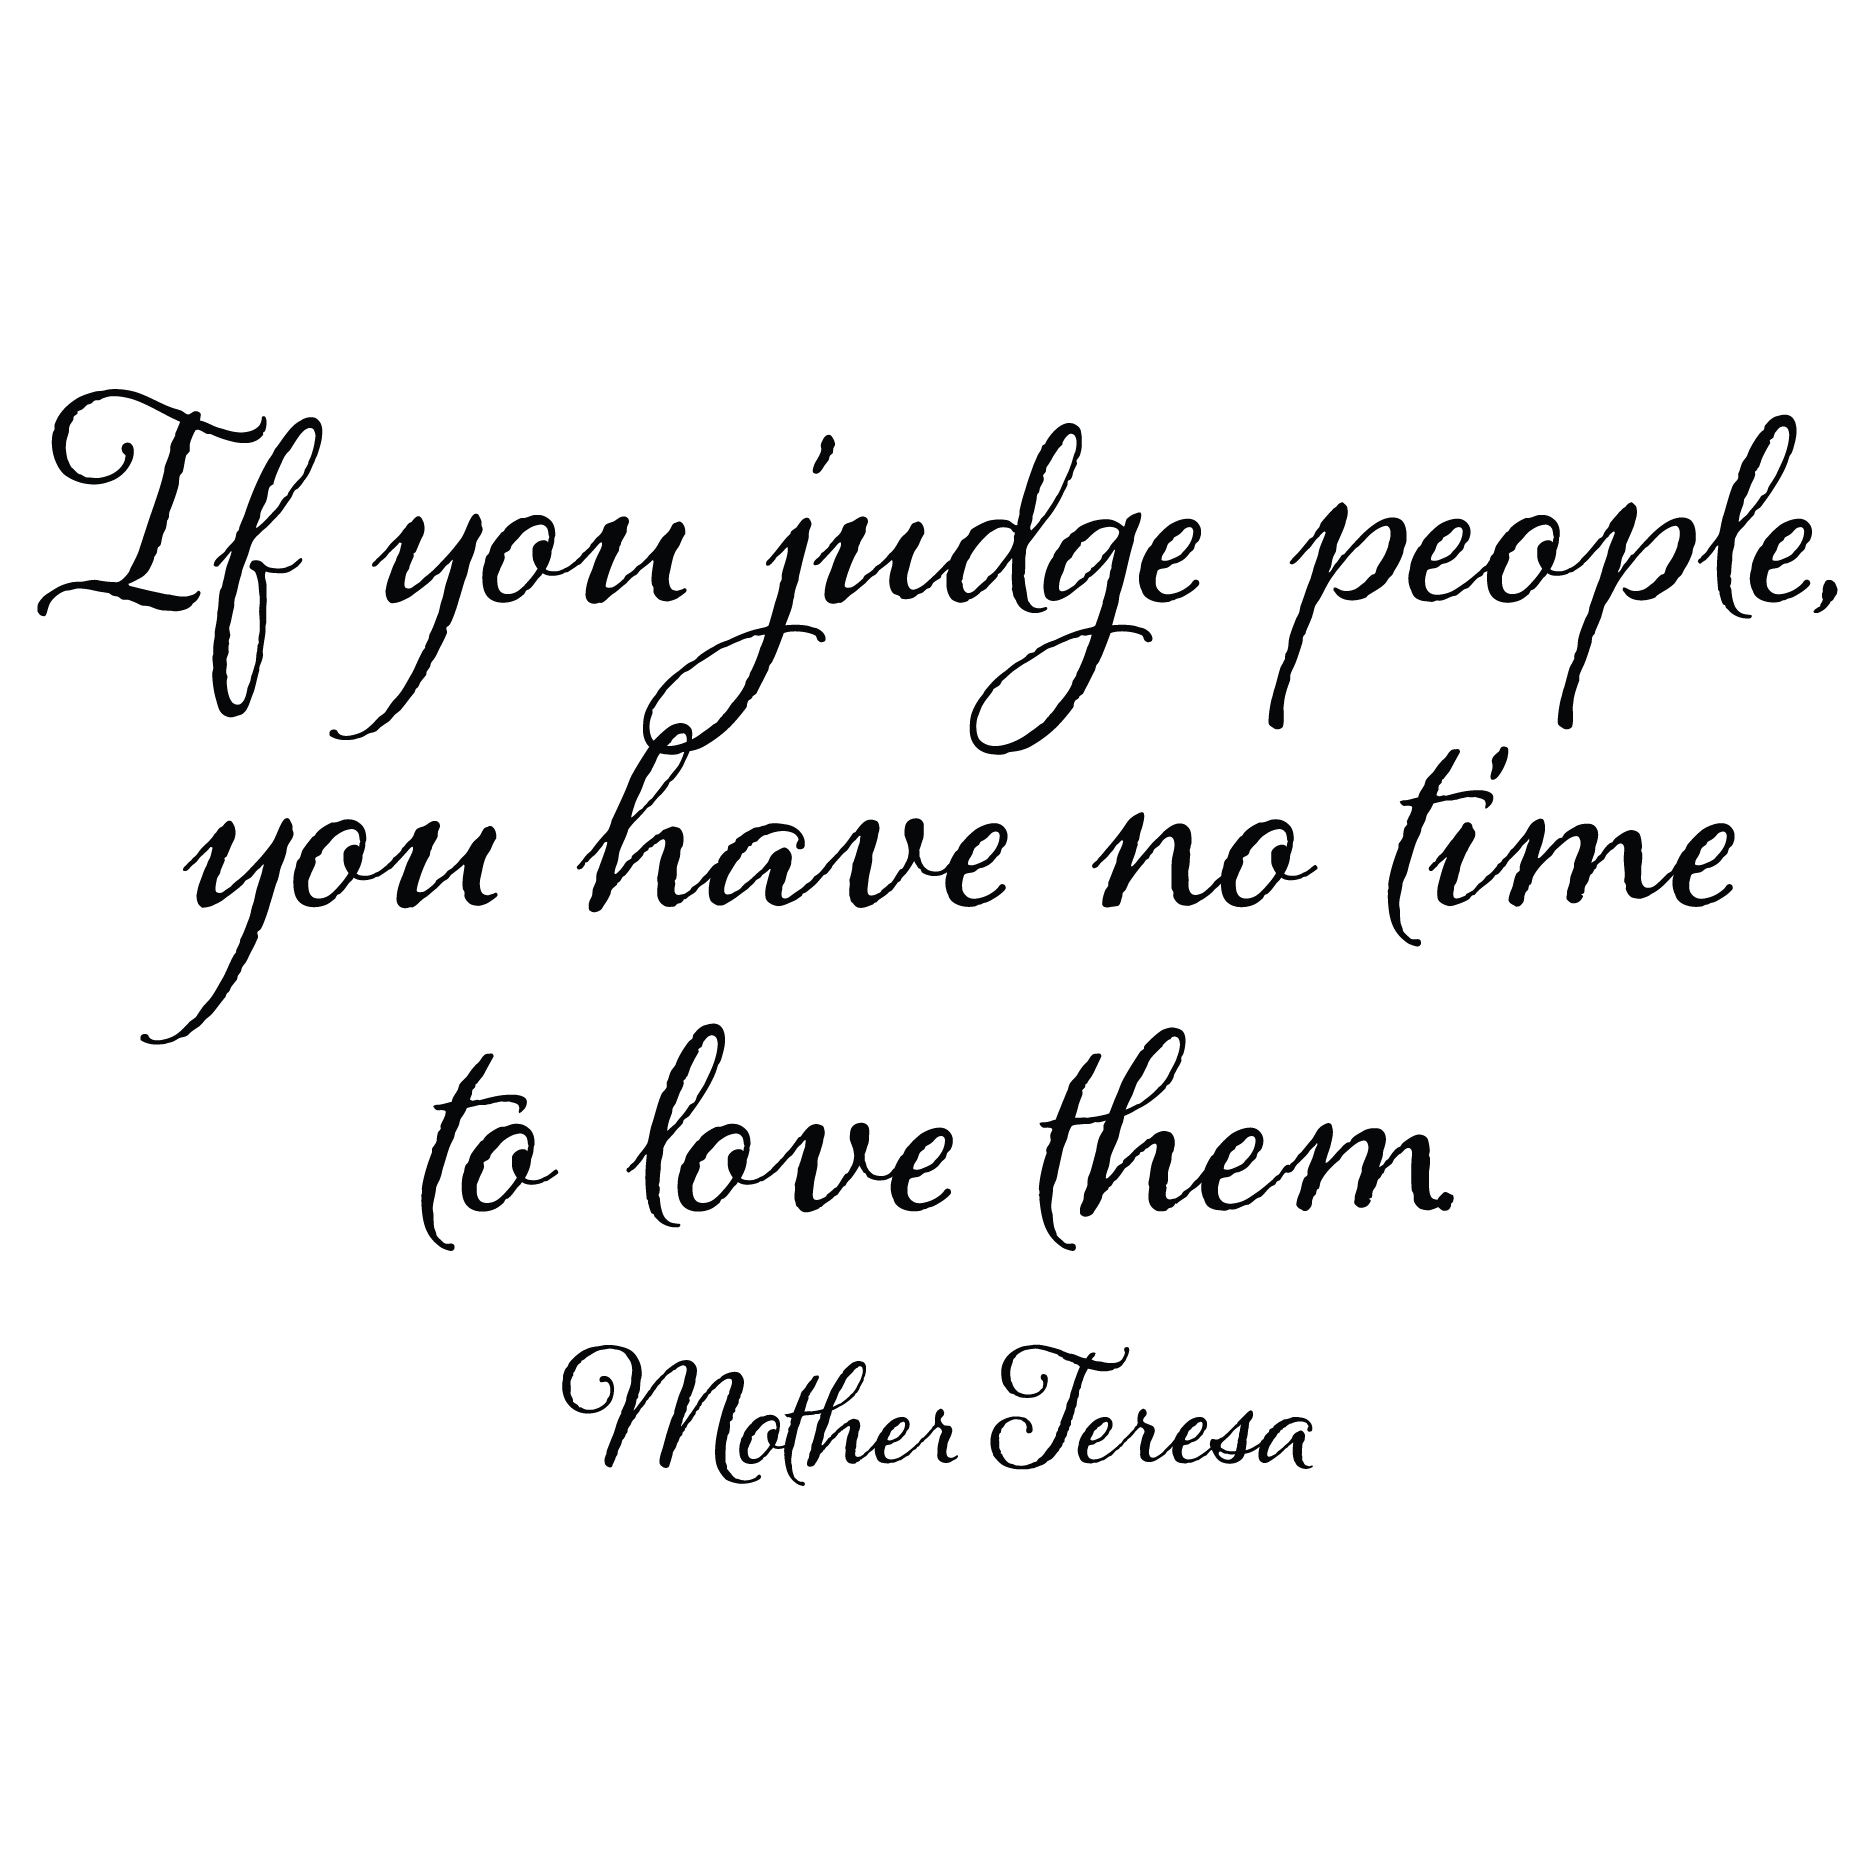 If You Judge People Wall Quotes Decal Wallquotes